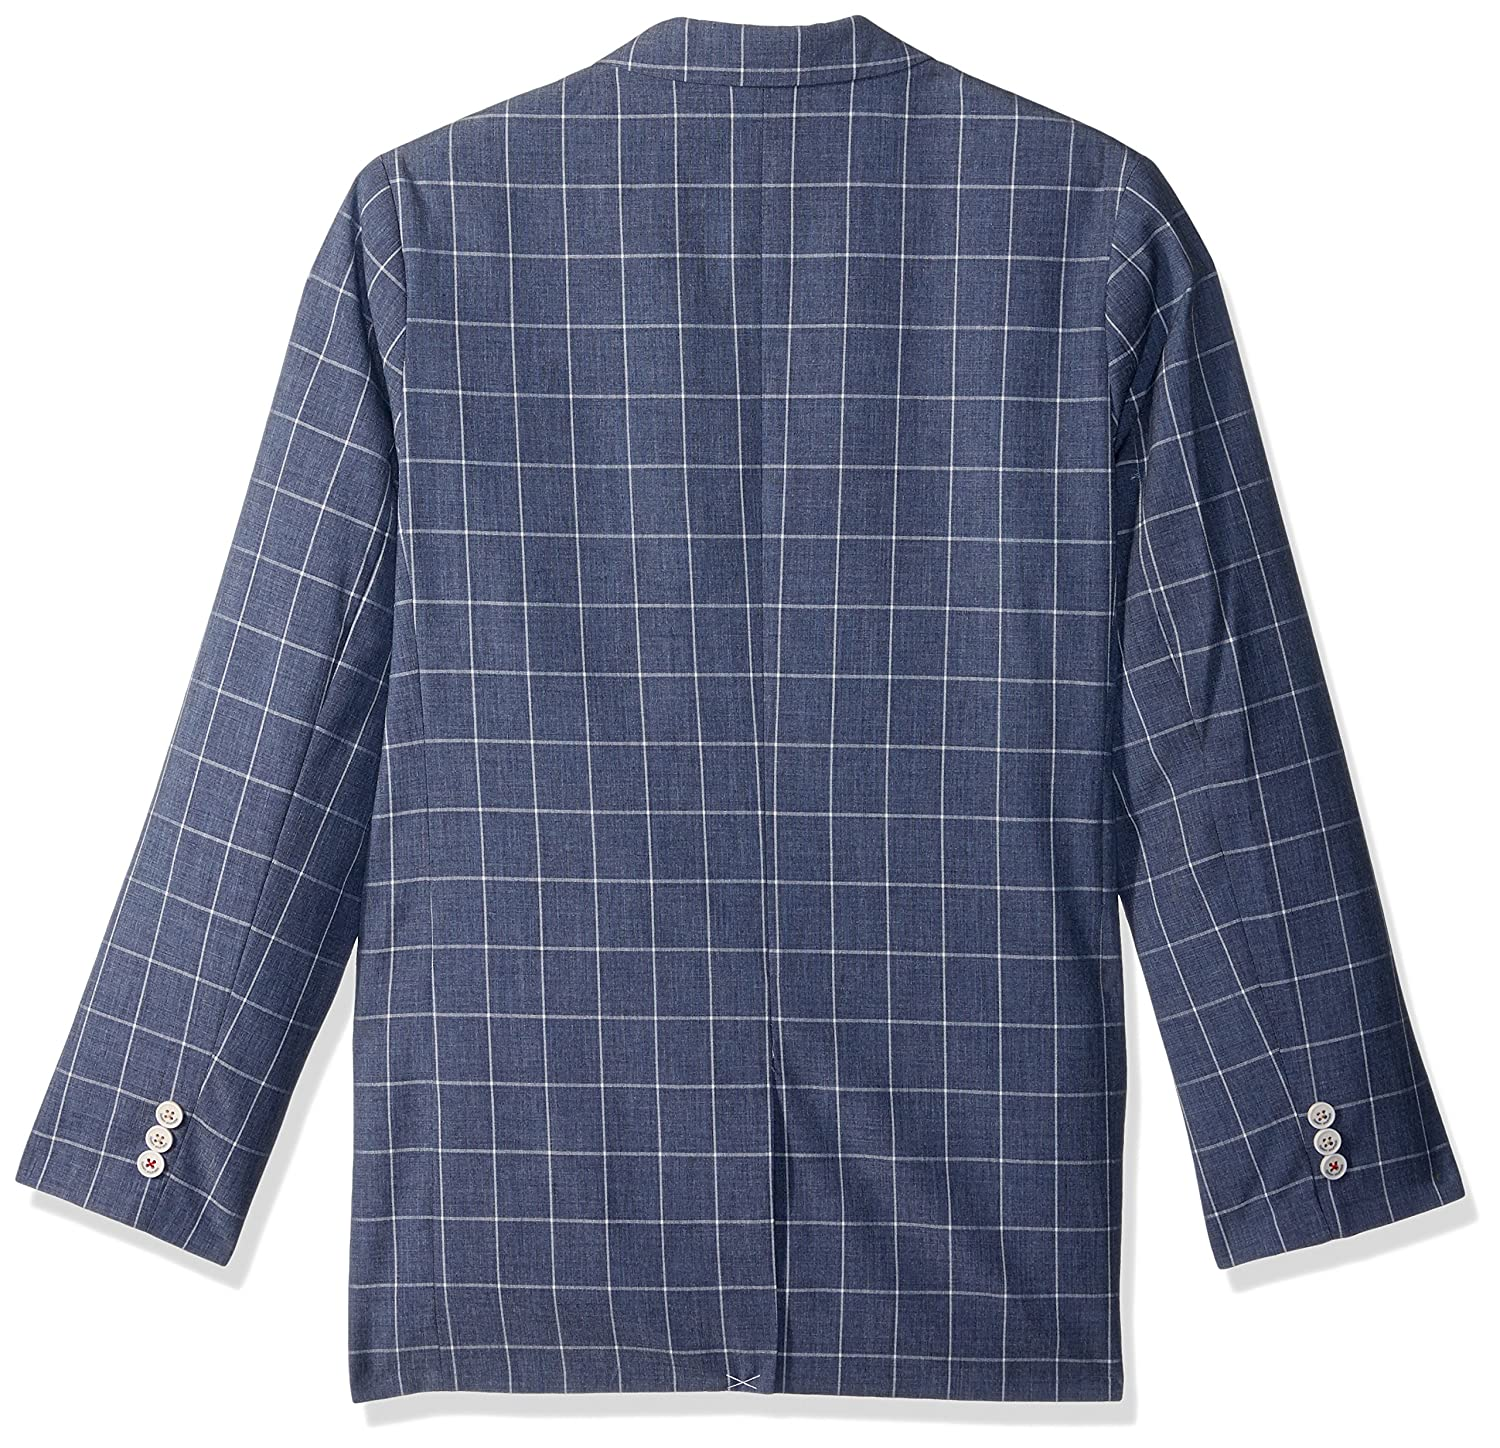 Tommy Hilfiger Boys Patterned Blazer Jacket